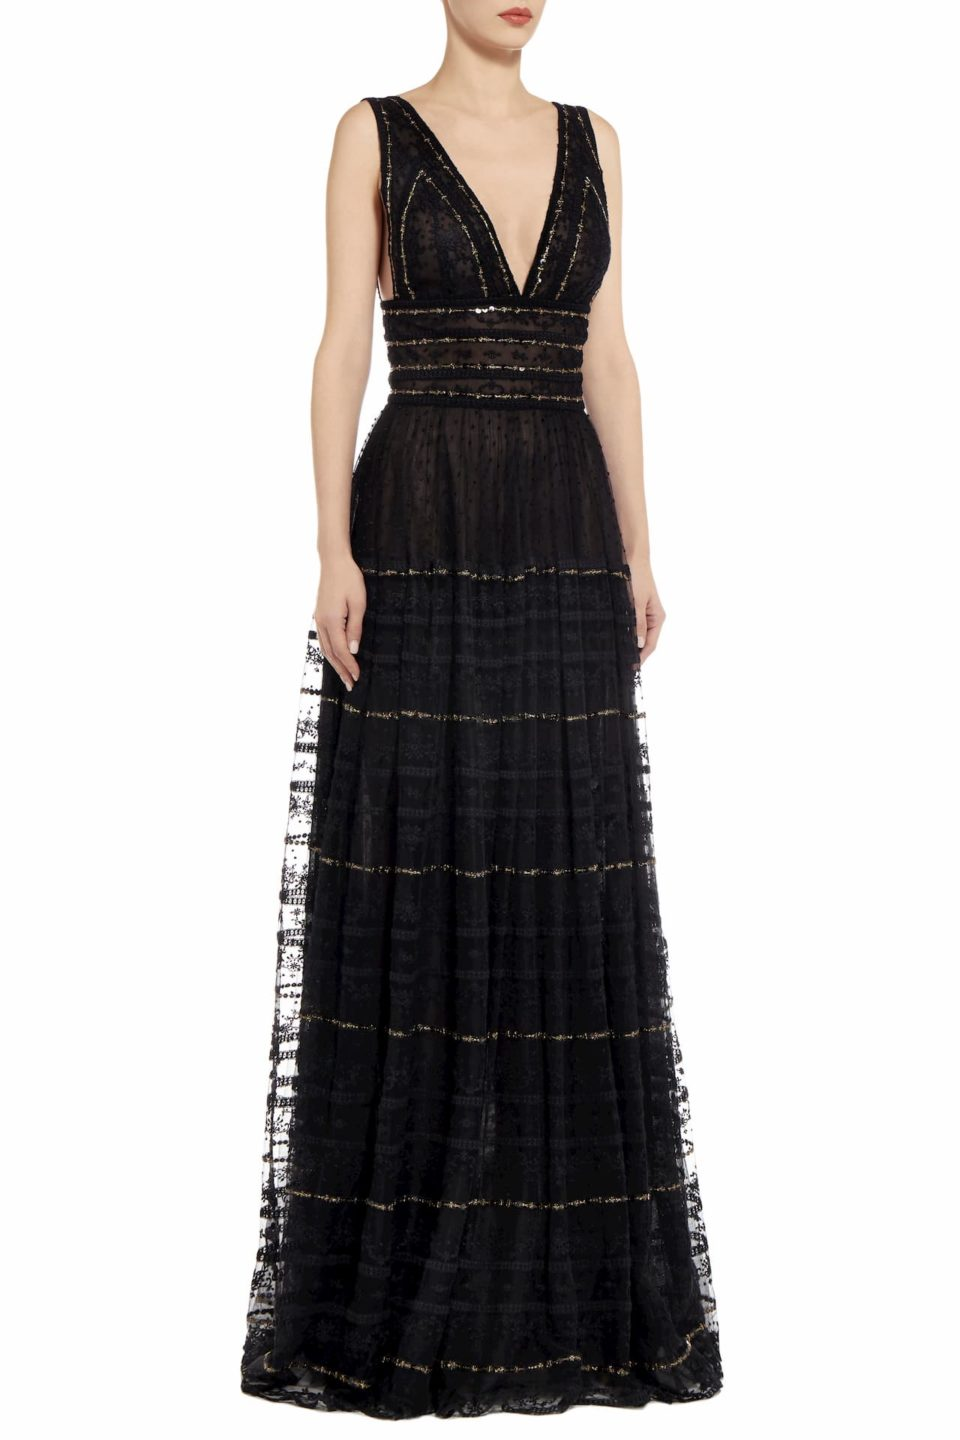 Patriciana black embroidered tulle empire-waist dress PS 2090